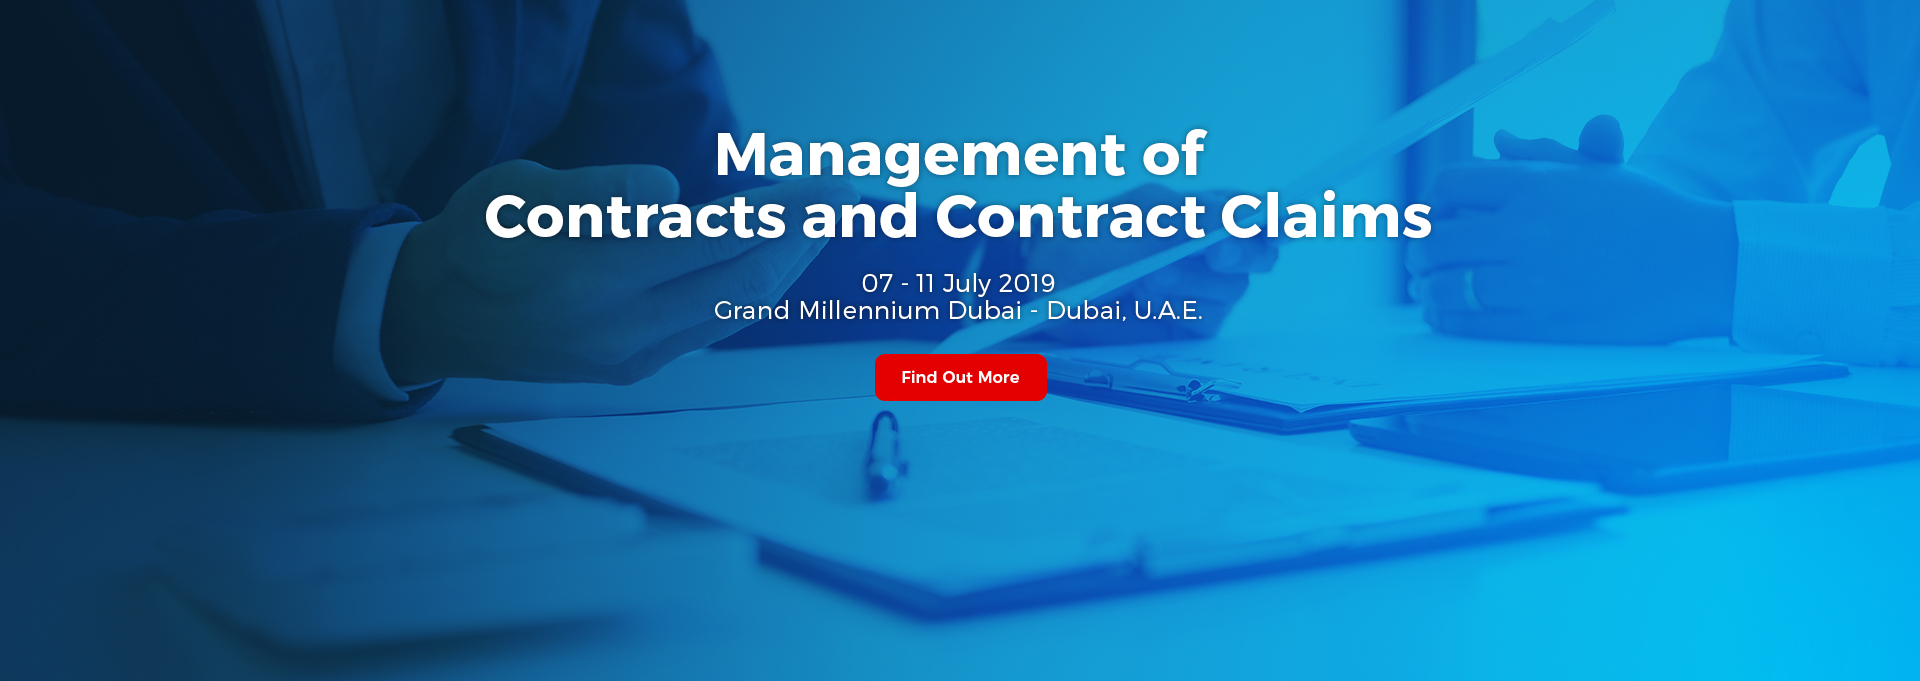 Management of Contracts and Contract Claims